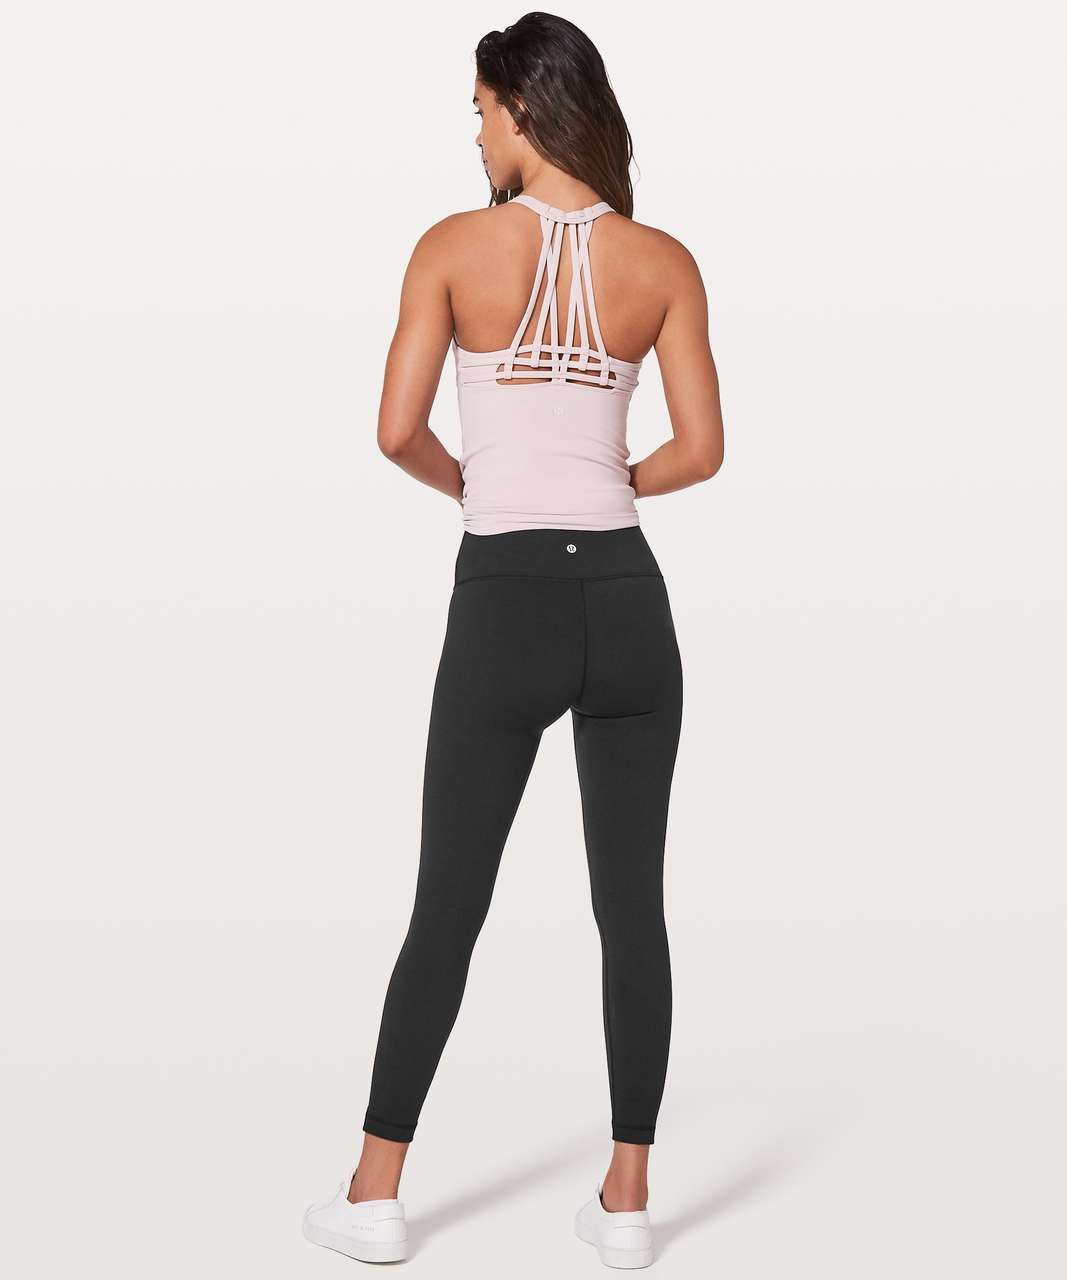 "Lululemon Wunder Under Hi-Rise 7/8 Tight *Full-On Luon 25"" - Black"